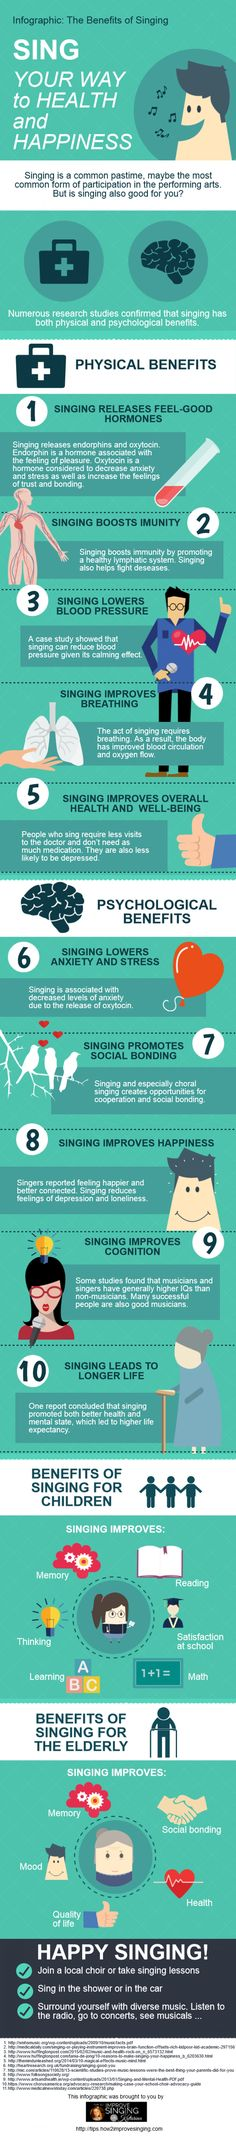 The Benefits of Singing